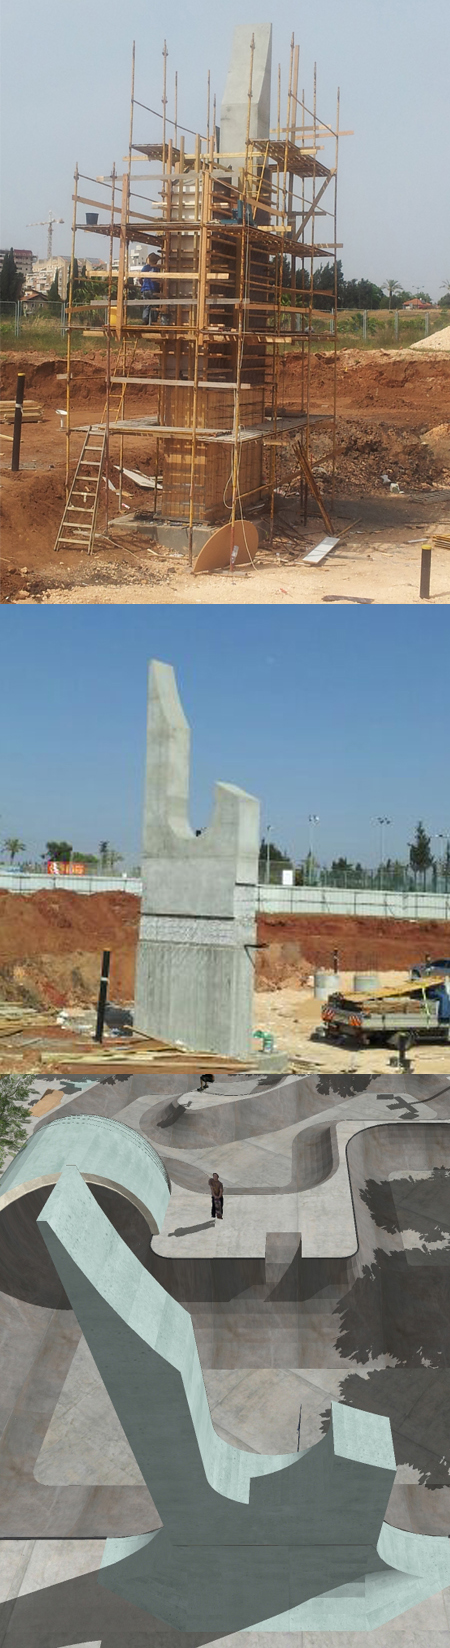 Israel Construction